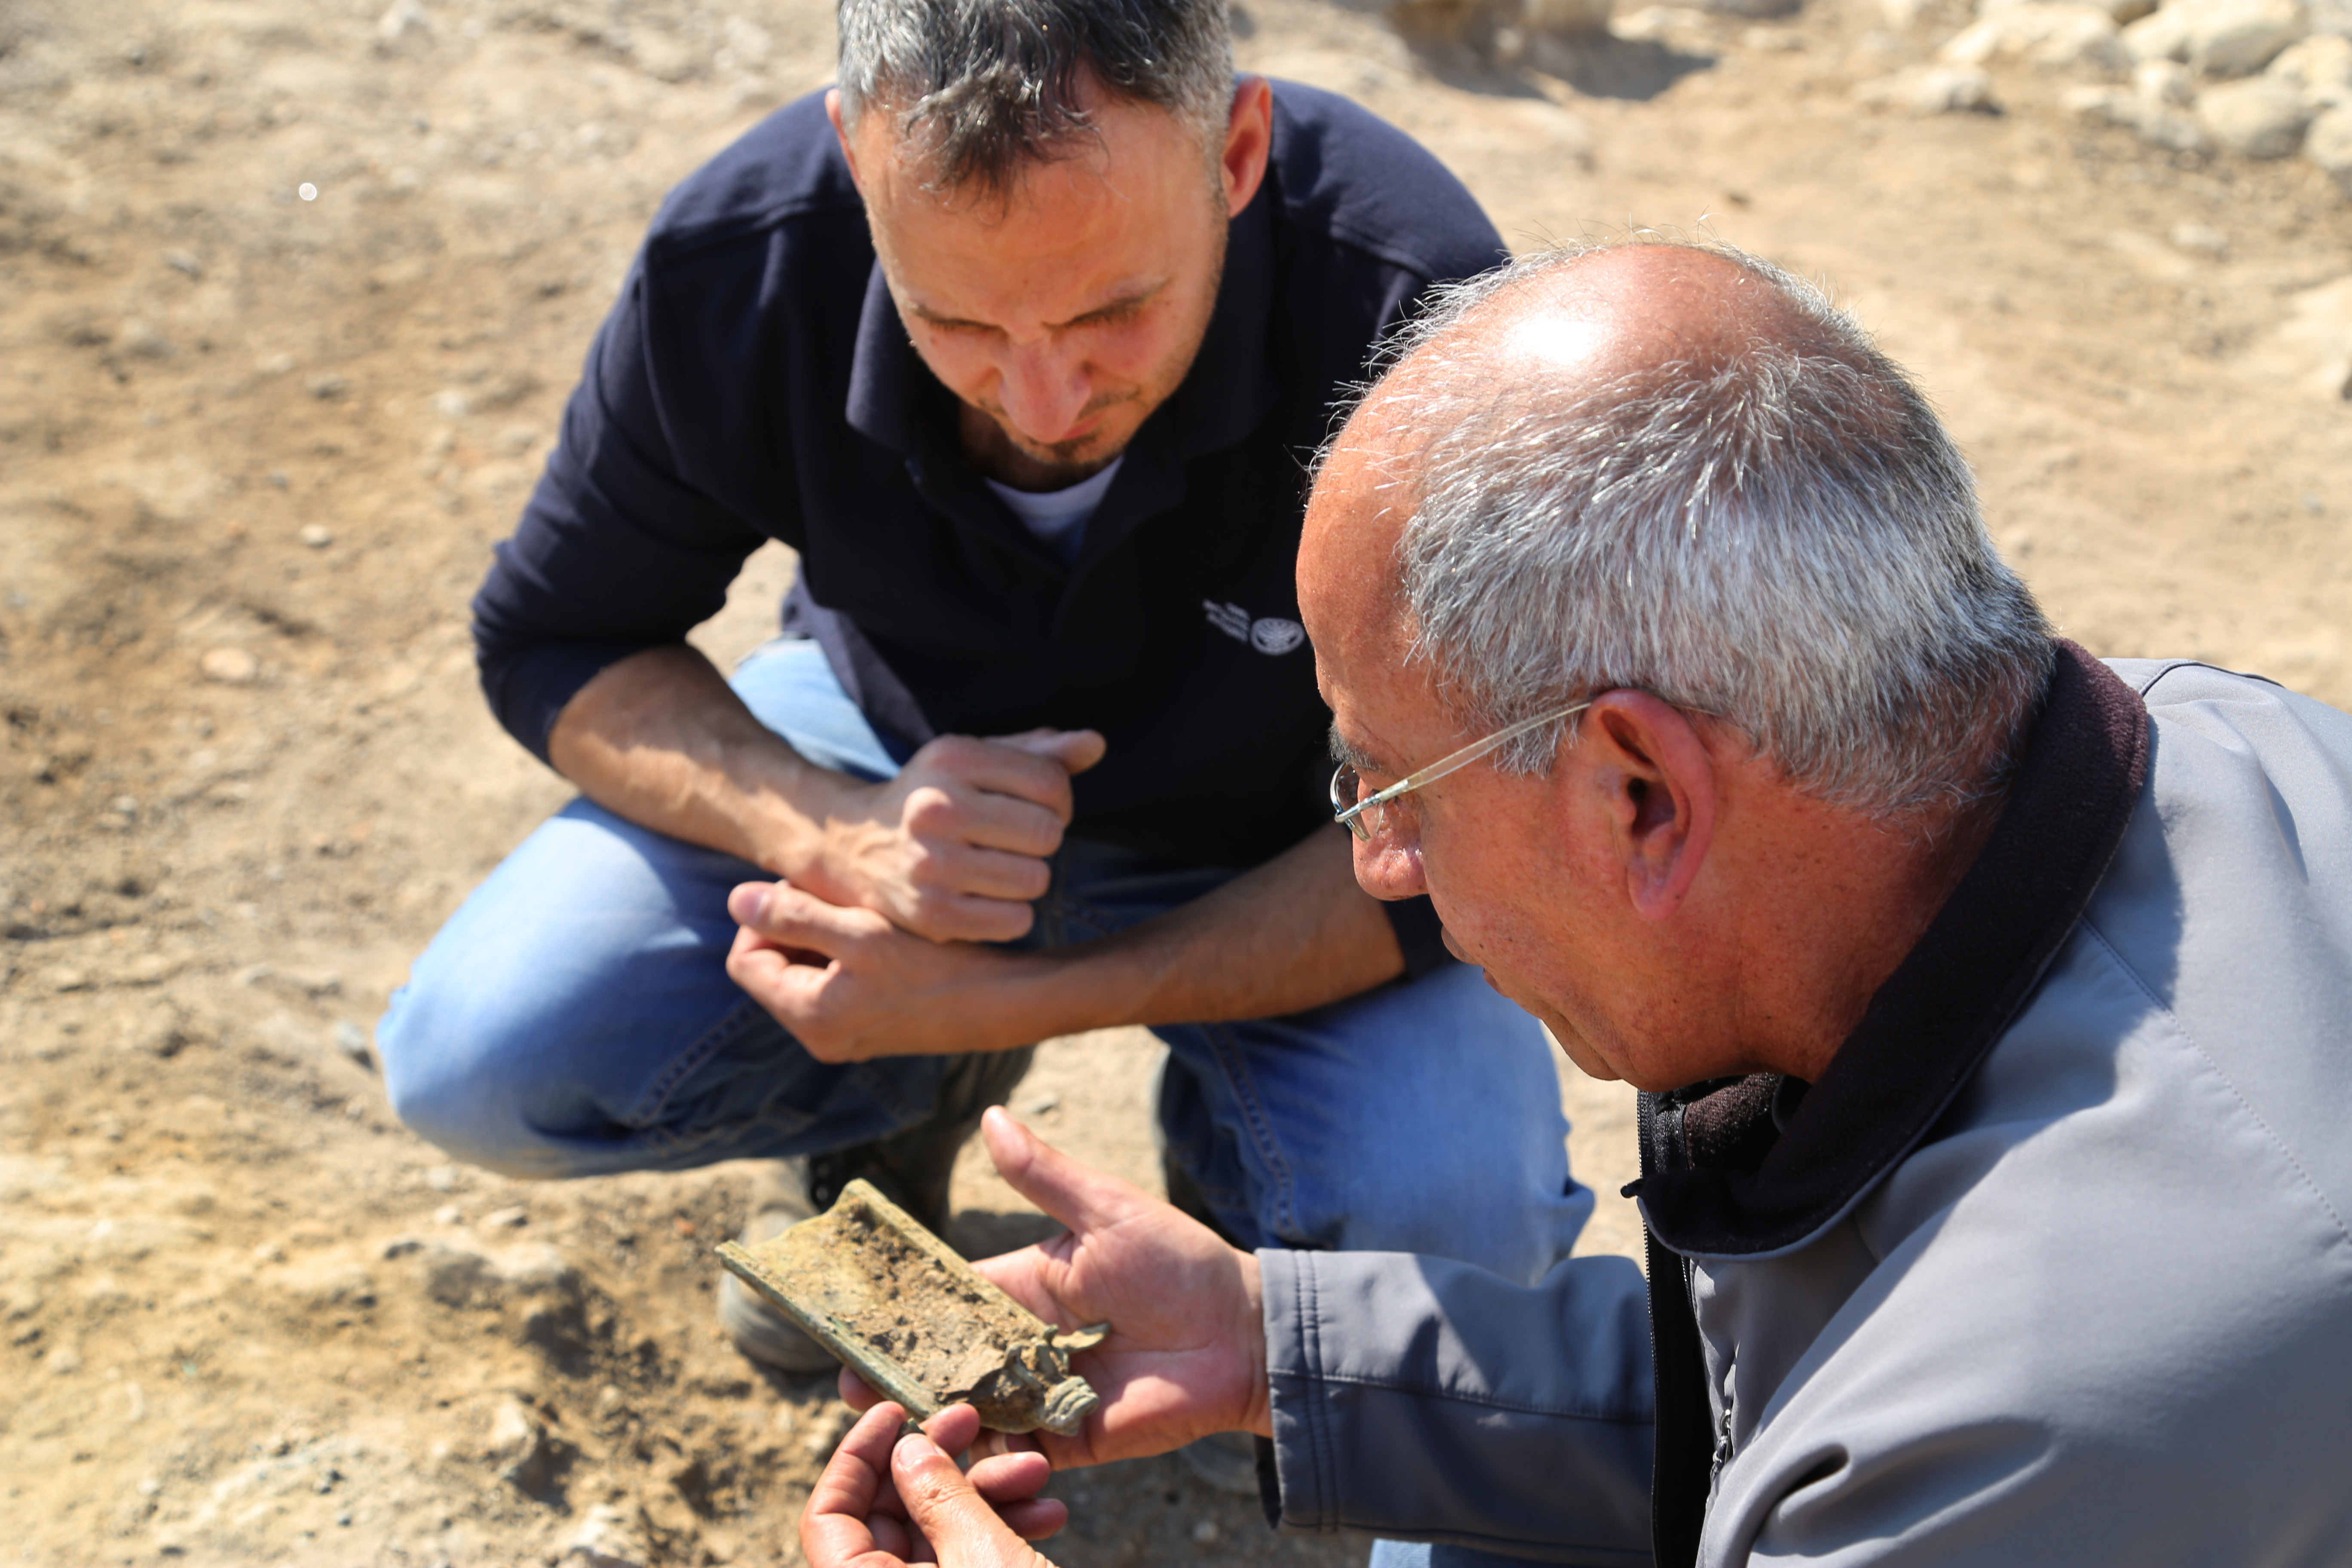 Eyad Bisharat views the bronze incense shovel being held by Arfan Najar, at Magdala where it was discovered. Photo: Israel Antiquities Authority